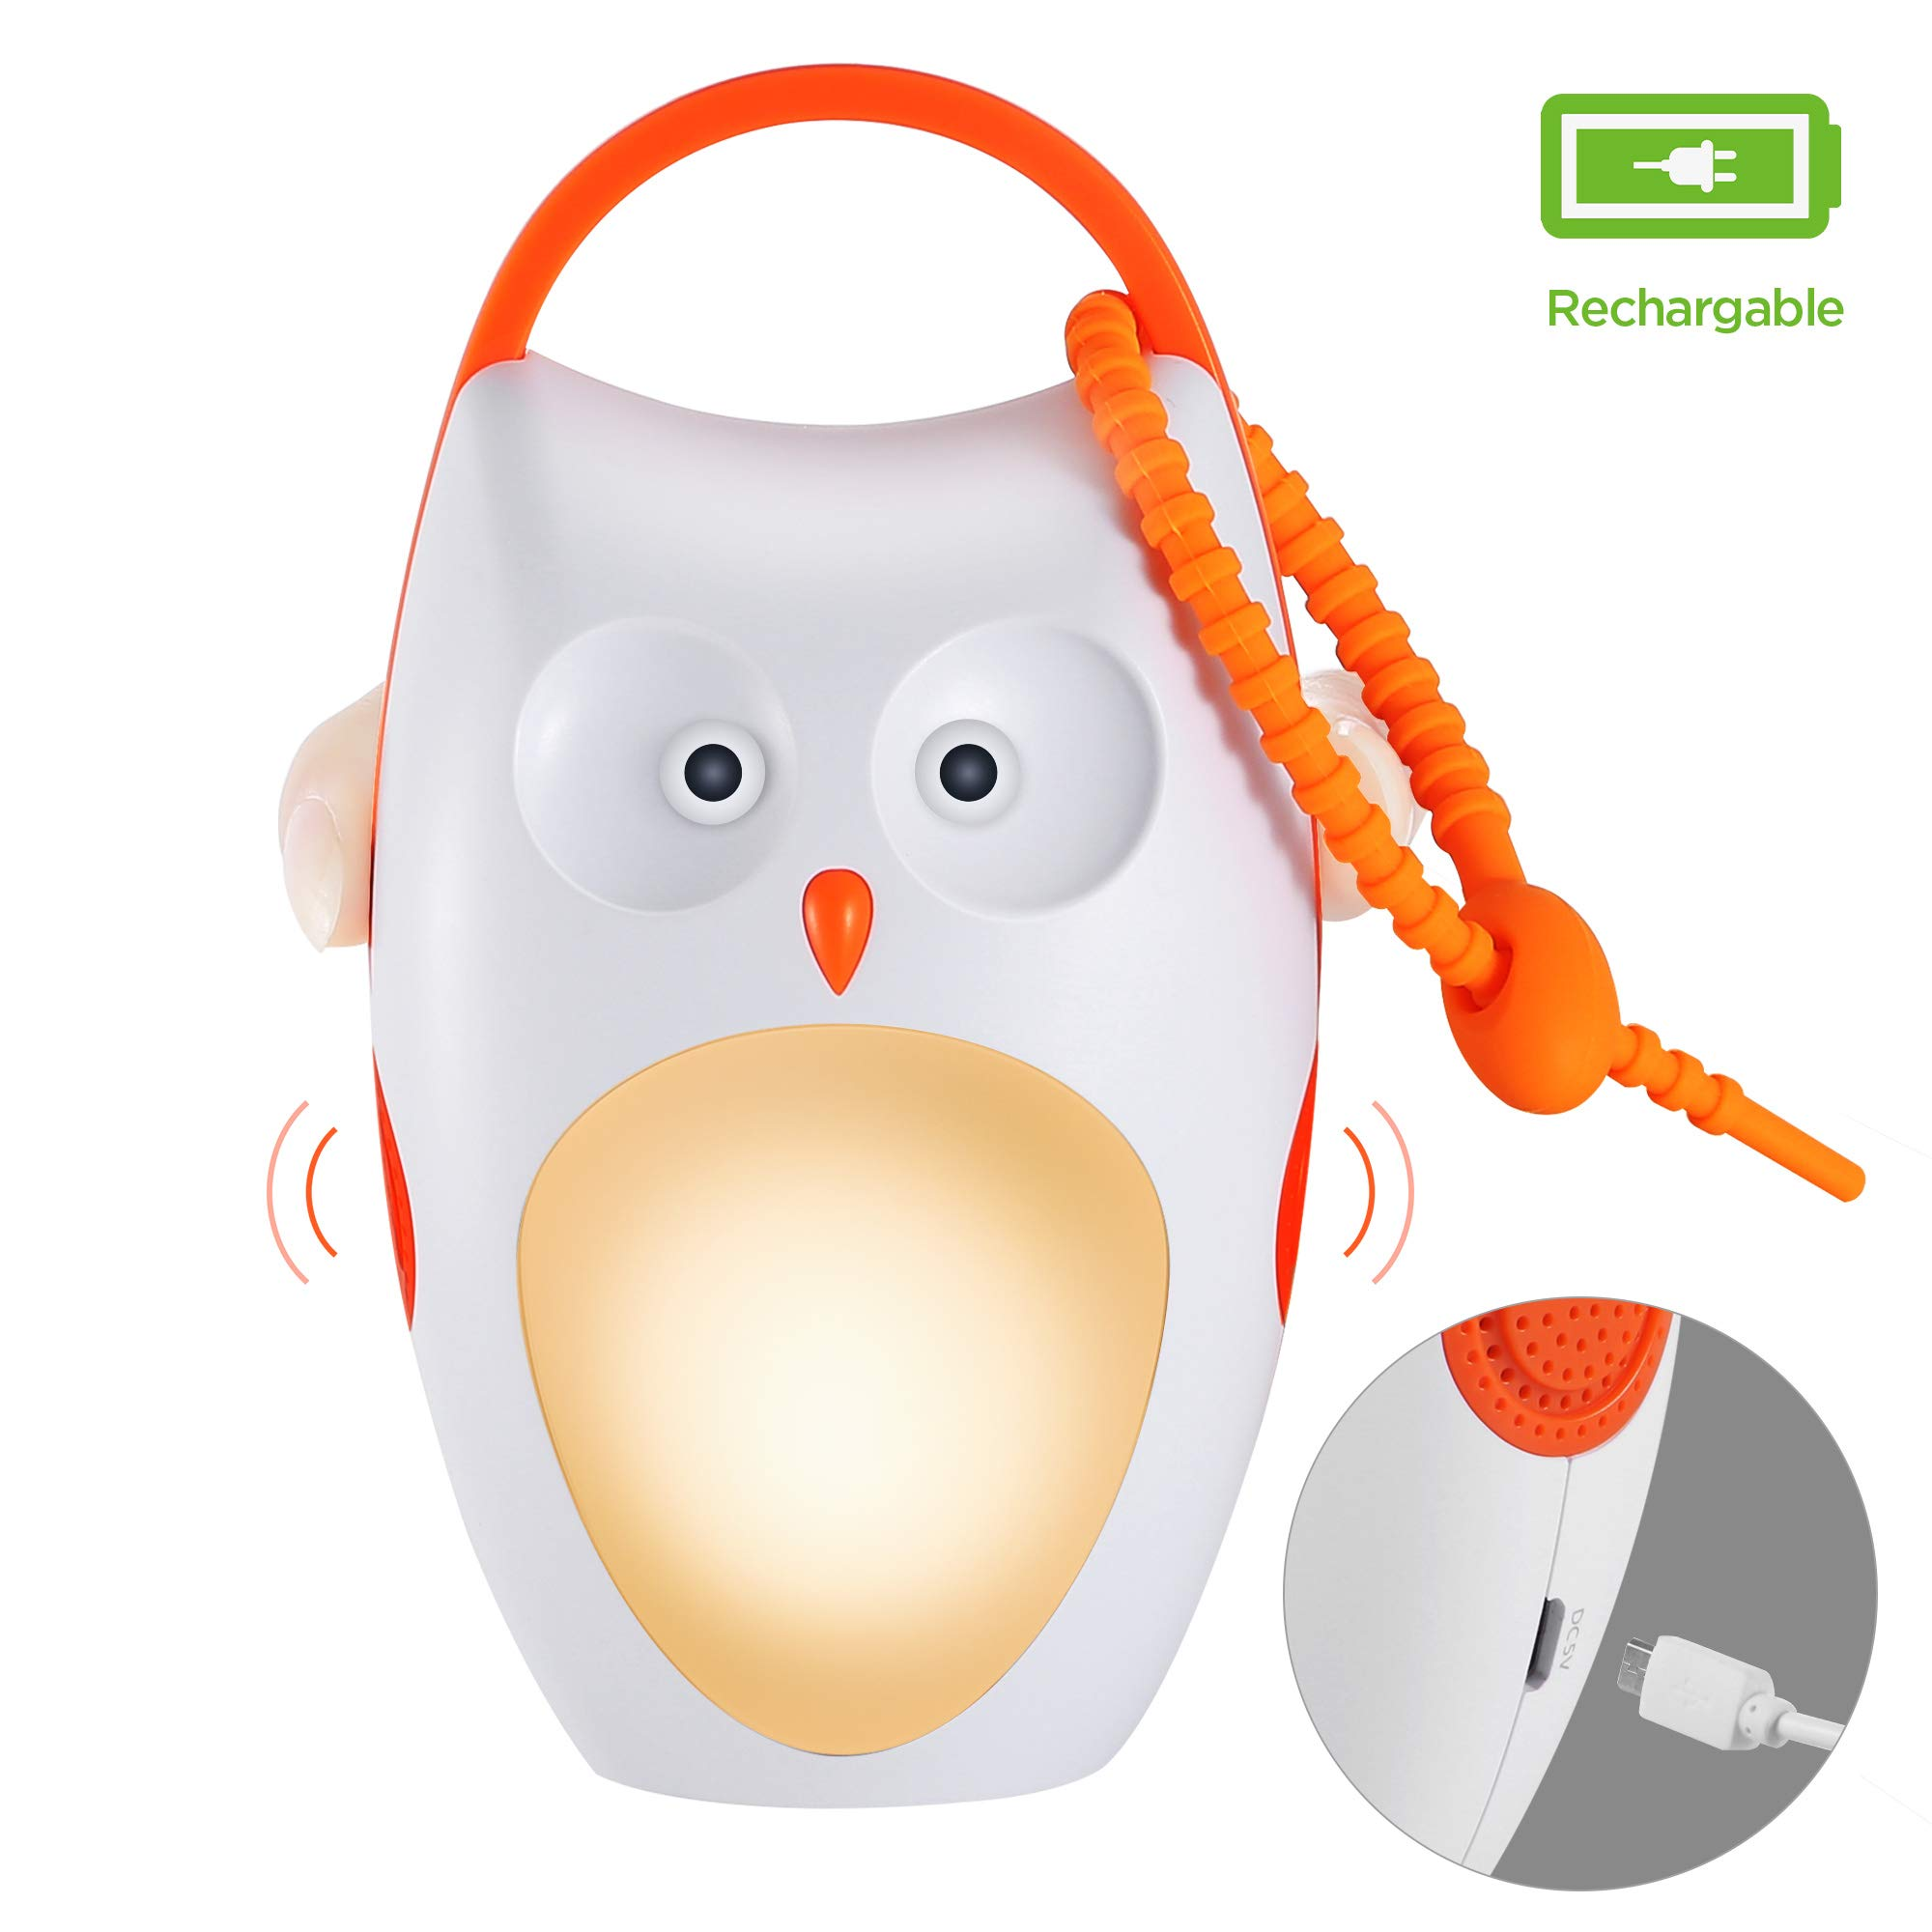 Baby Sleep Soother Sound Machines, Rechargeable, Portable Travel White Noise Sound Machines with Night Light, 7 Soothing Sounds and 3 Timers for Traveling, Sleeping, Baby Carriage (owl)